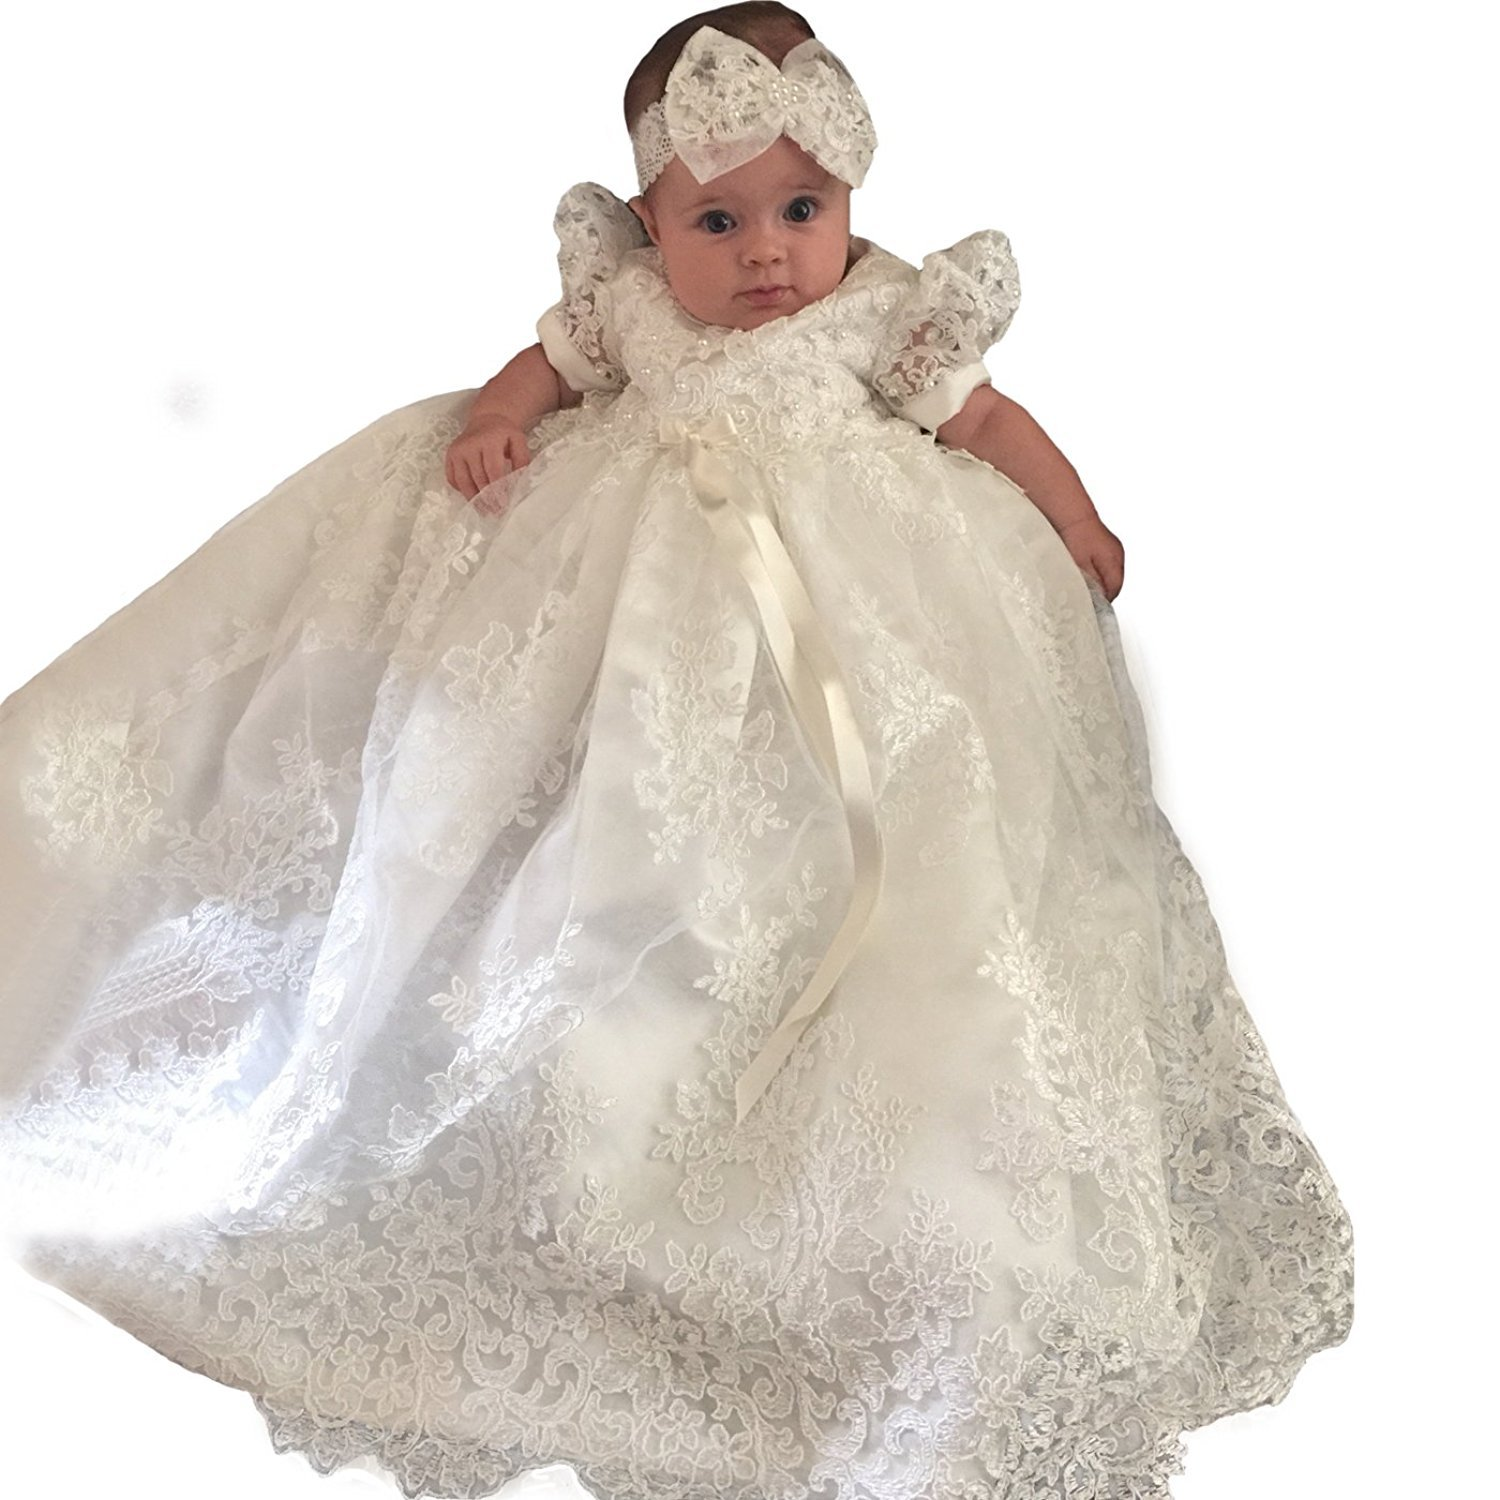 Baby Girls Christening Clothing | Amazon.com